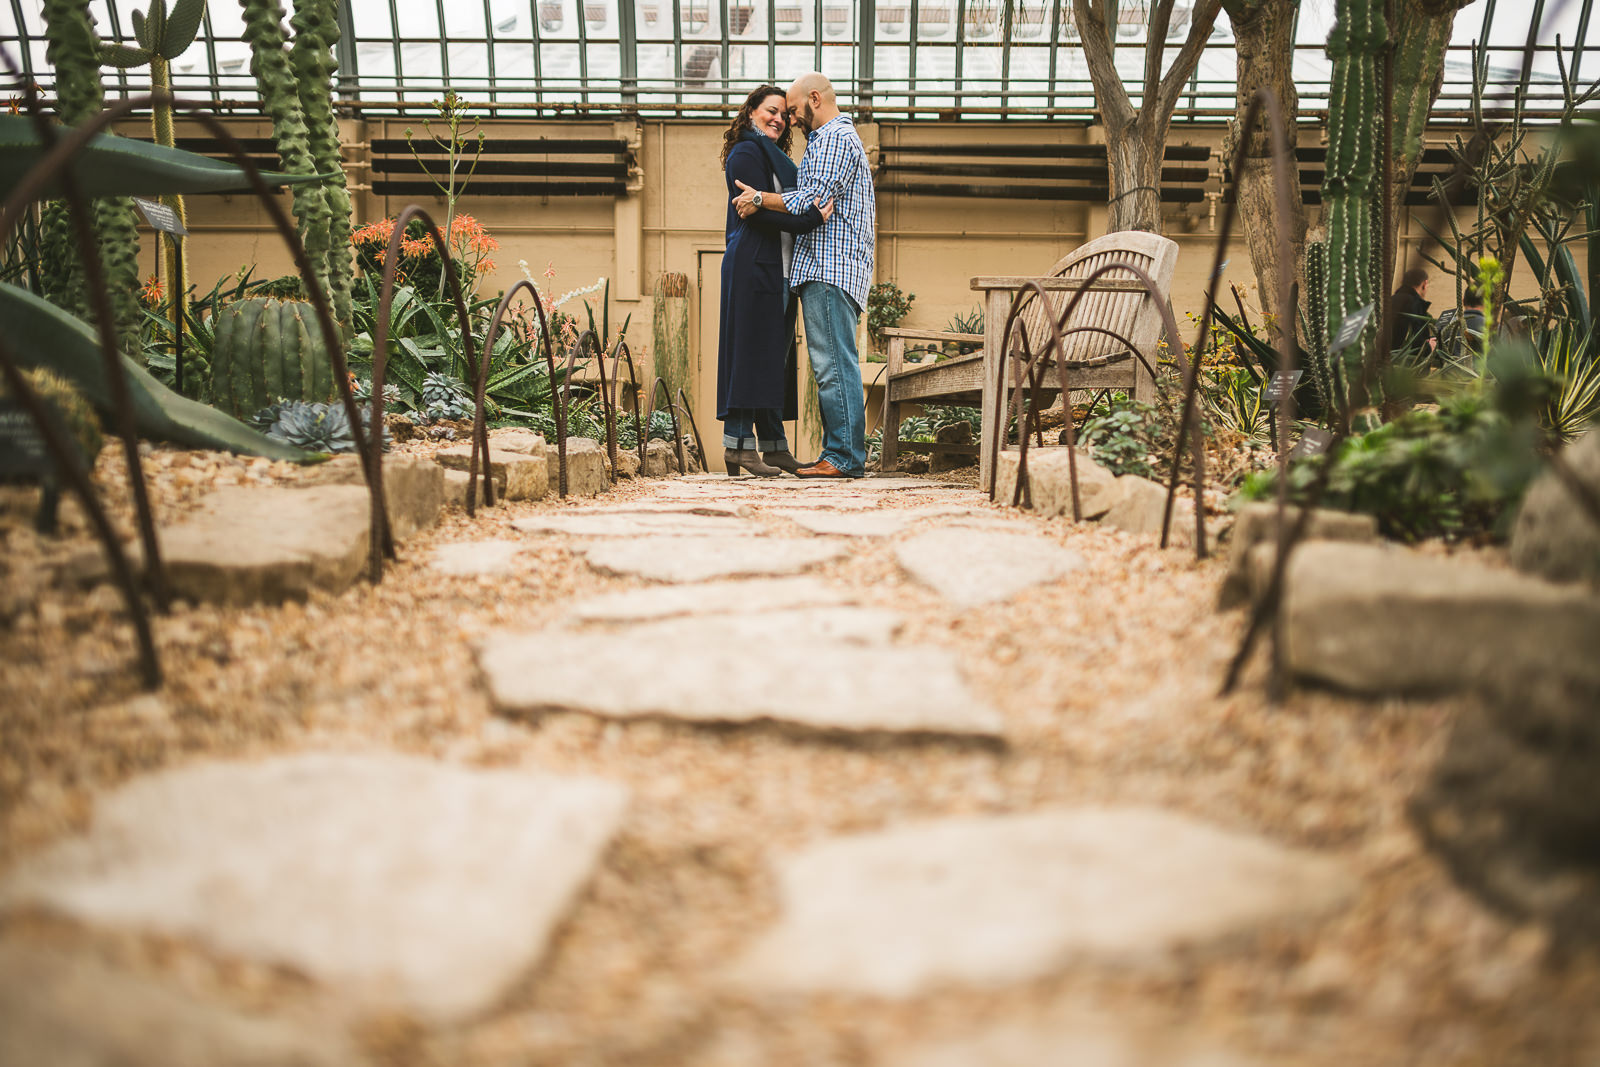 15 garfield park conservatory engagement session photos